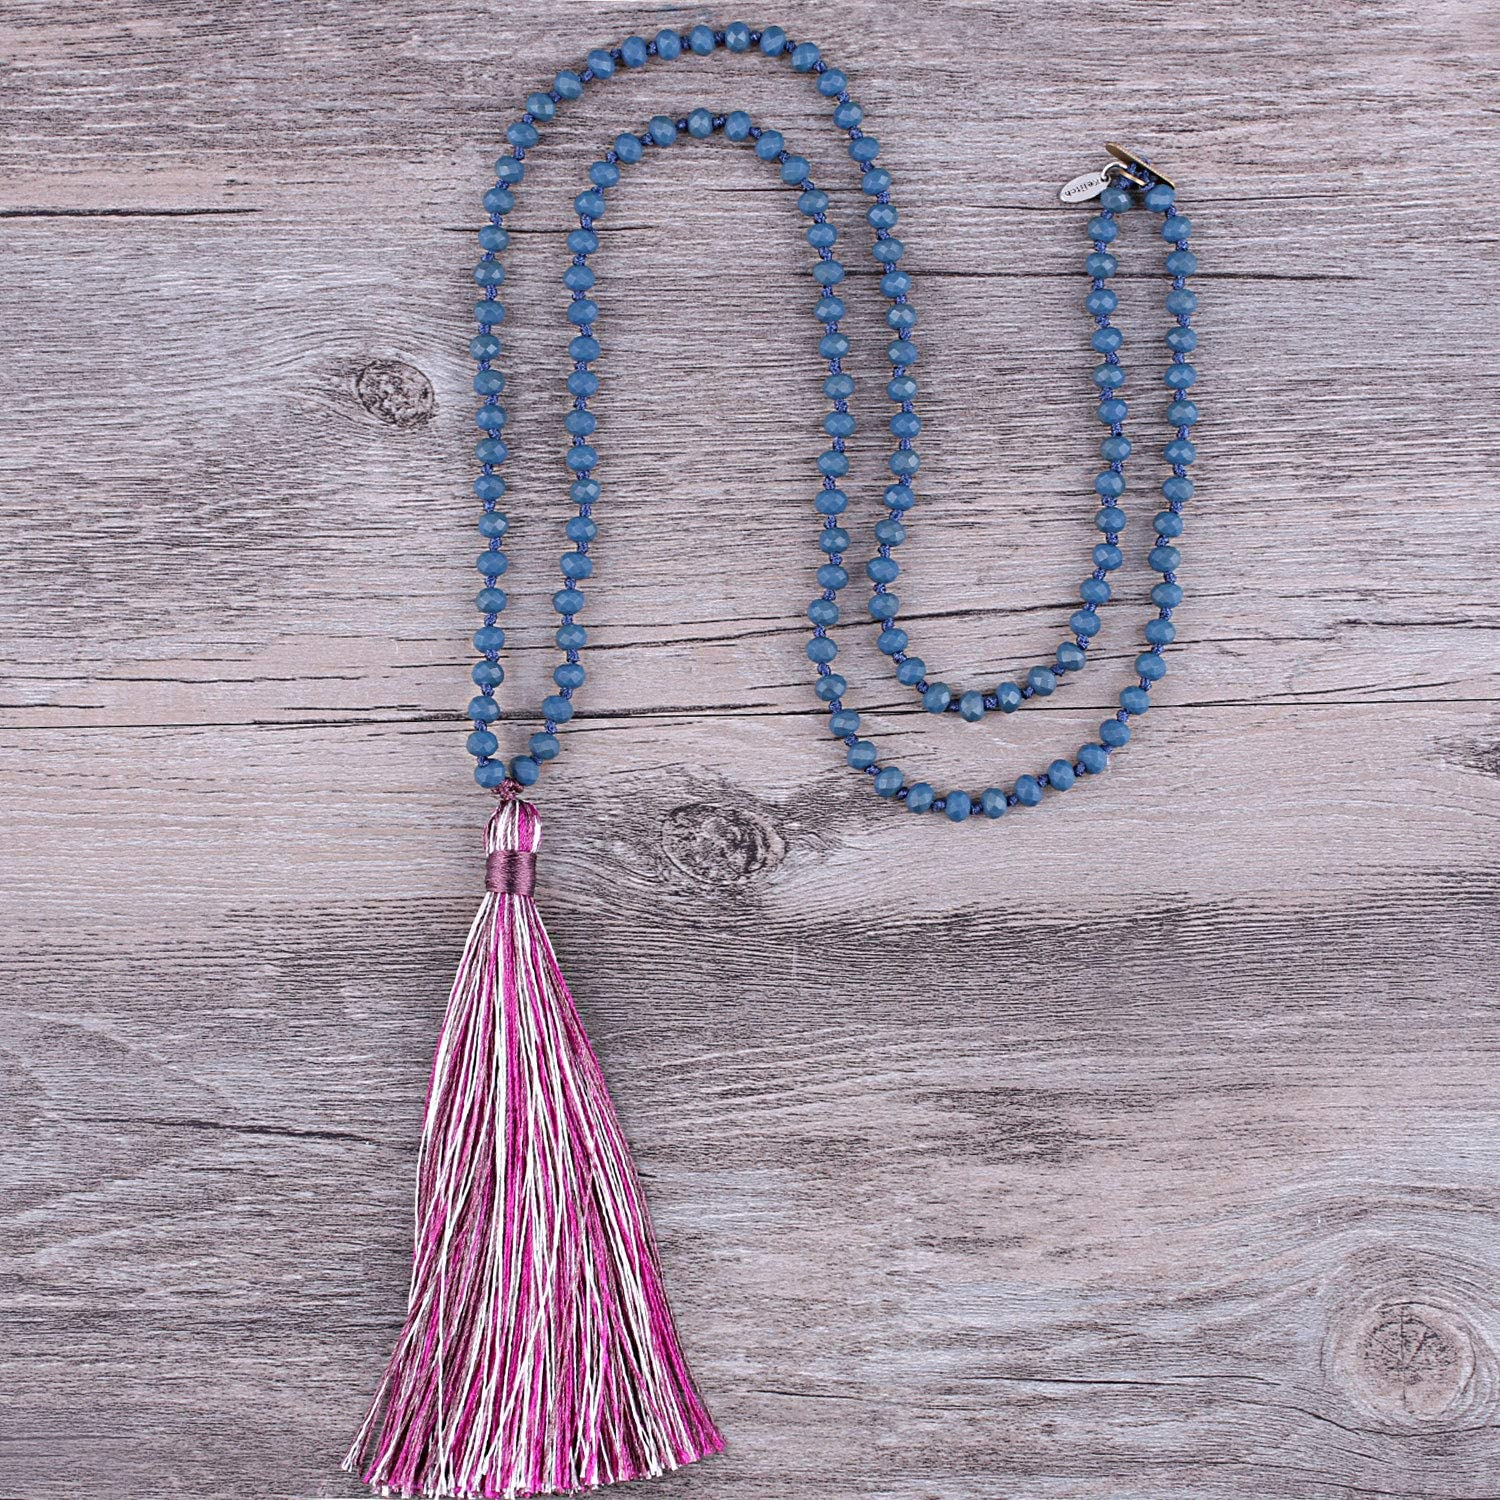 KELITCH Womens Tassel Necklace 6mm Long Crystal Beads Necklace Handmade Colorful Tassel Sweater Necklace